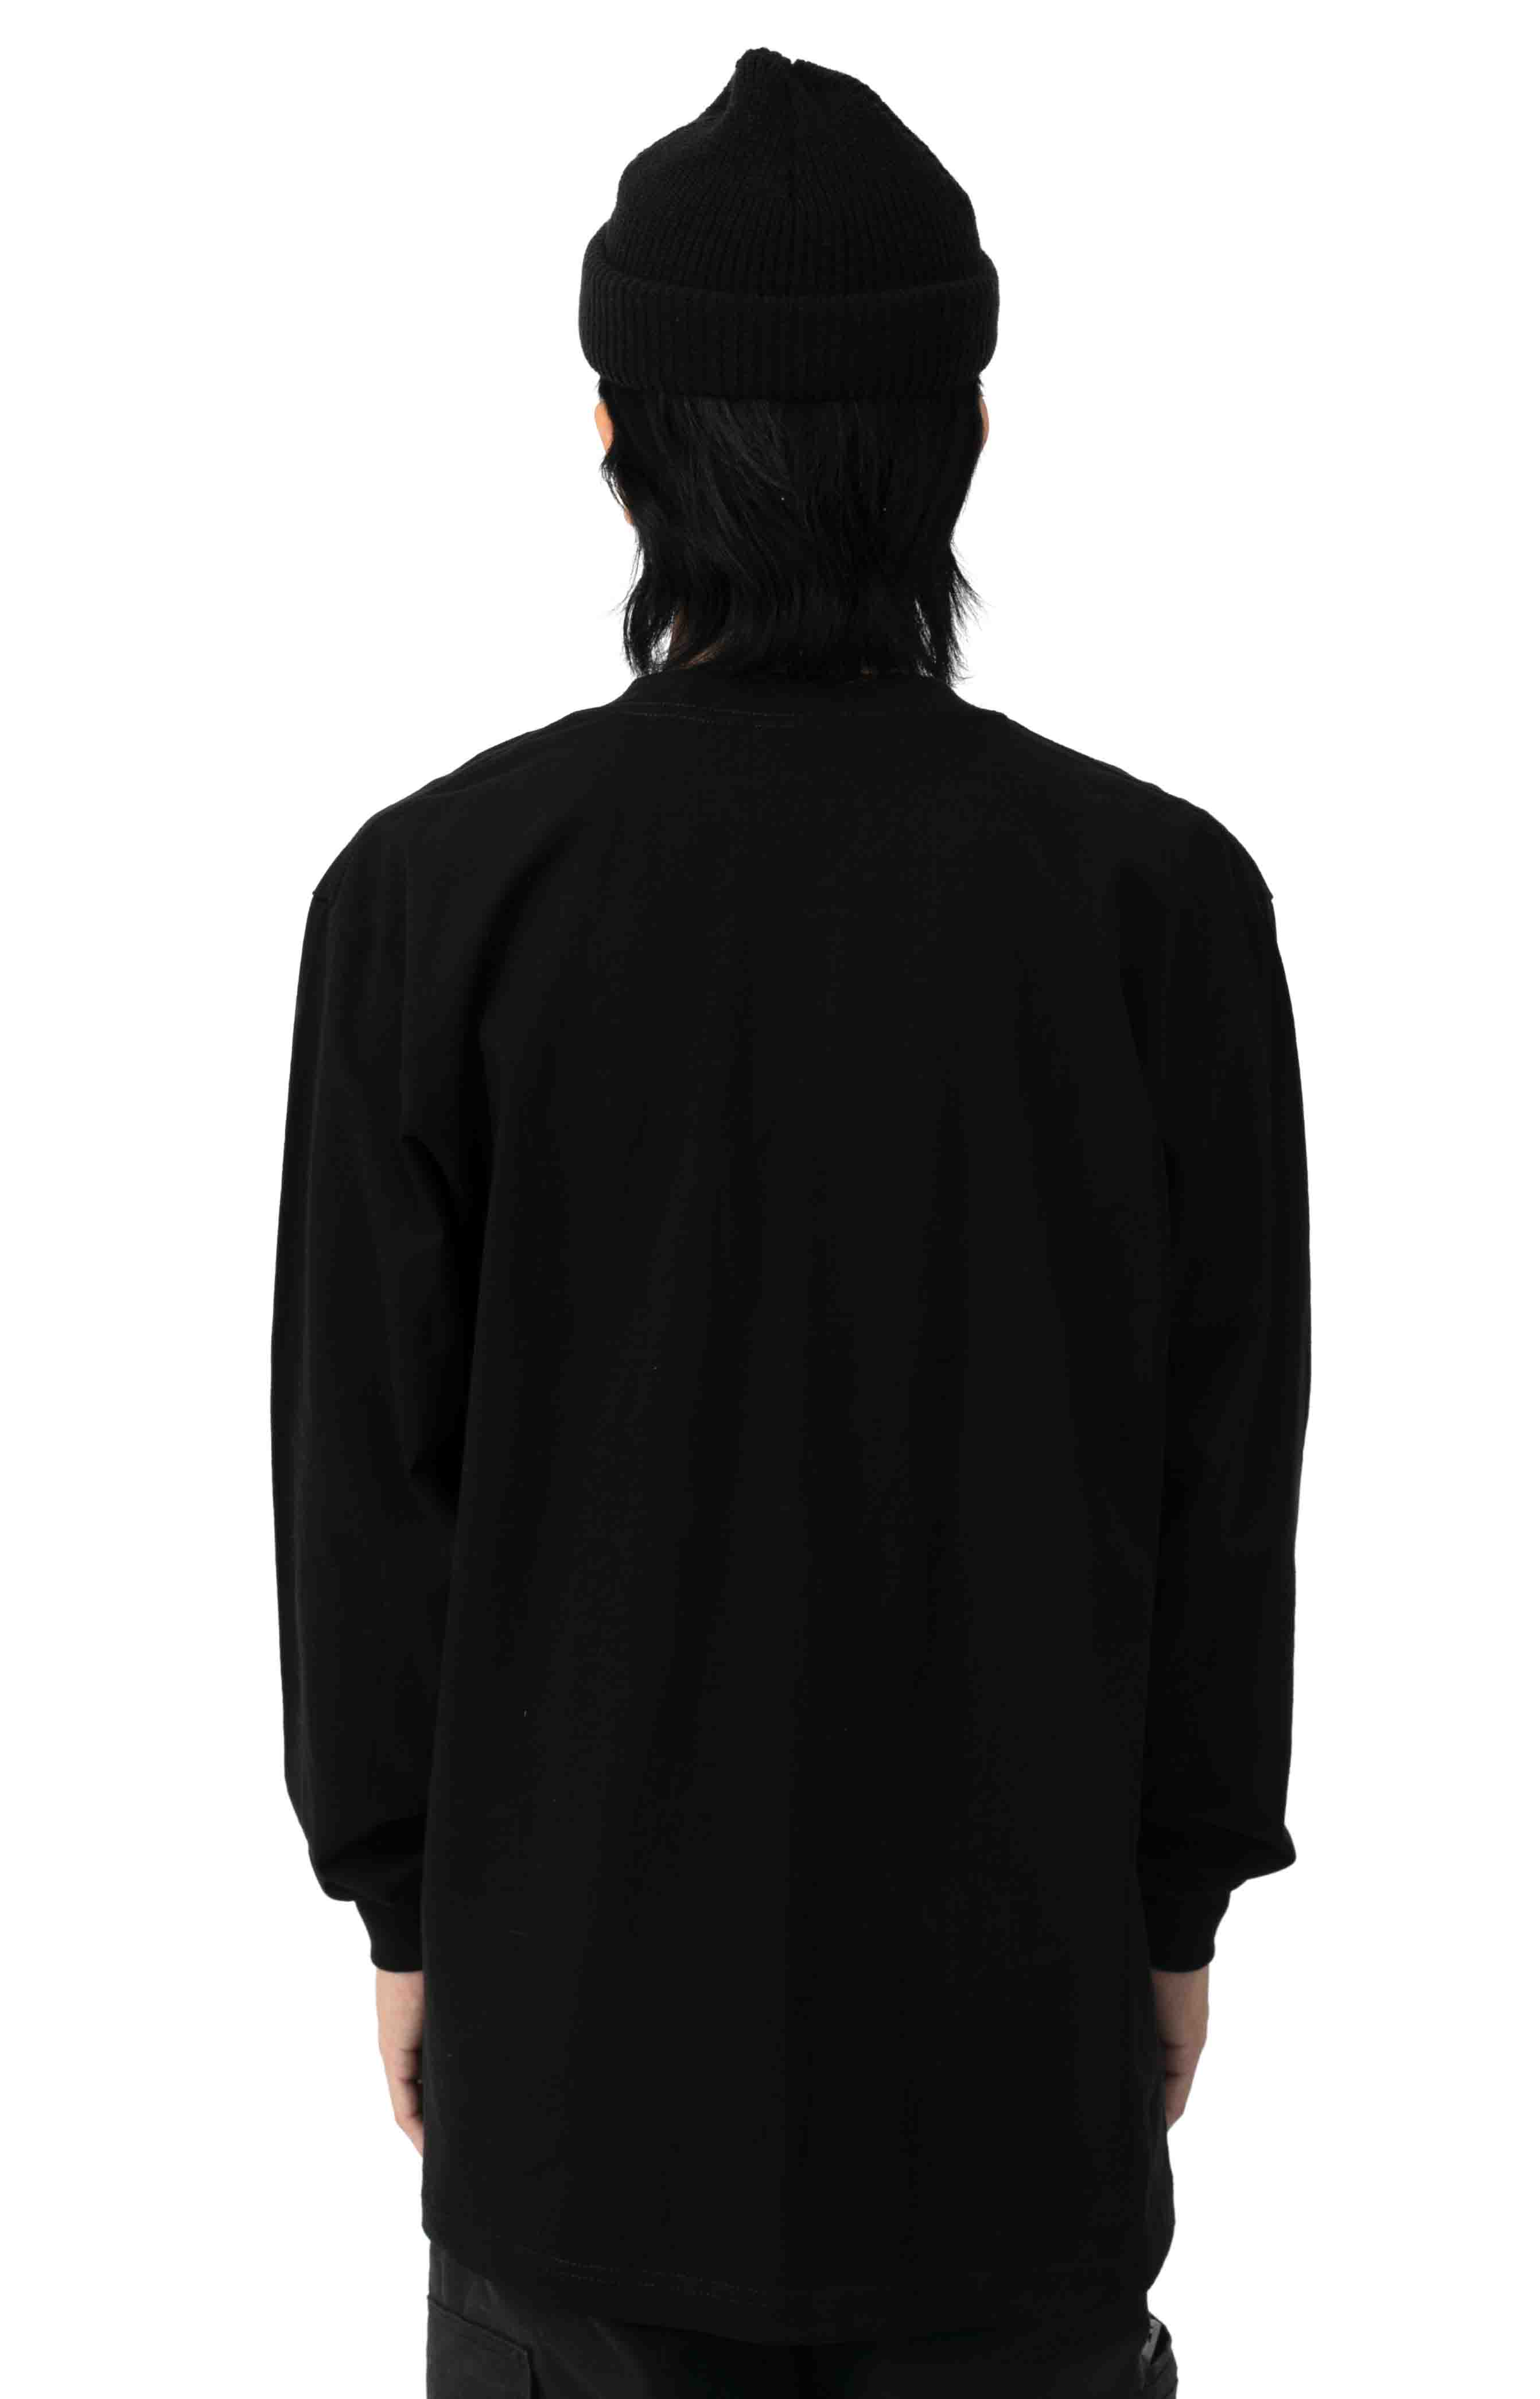 Max Heavyweight L/S Shirt - Black  3